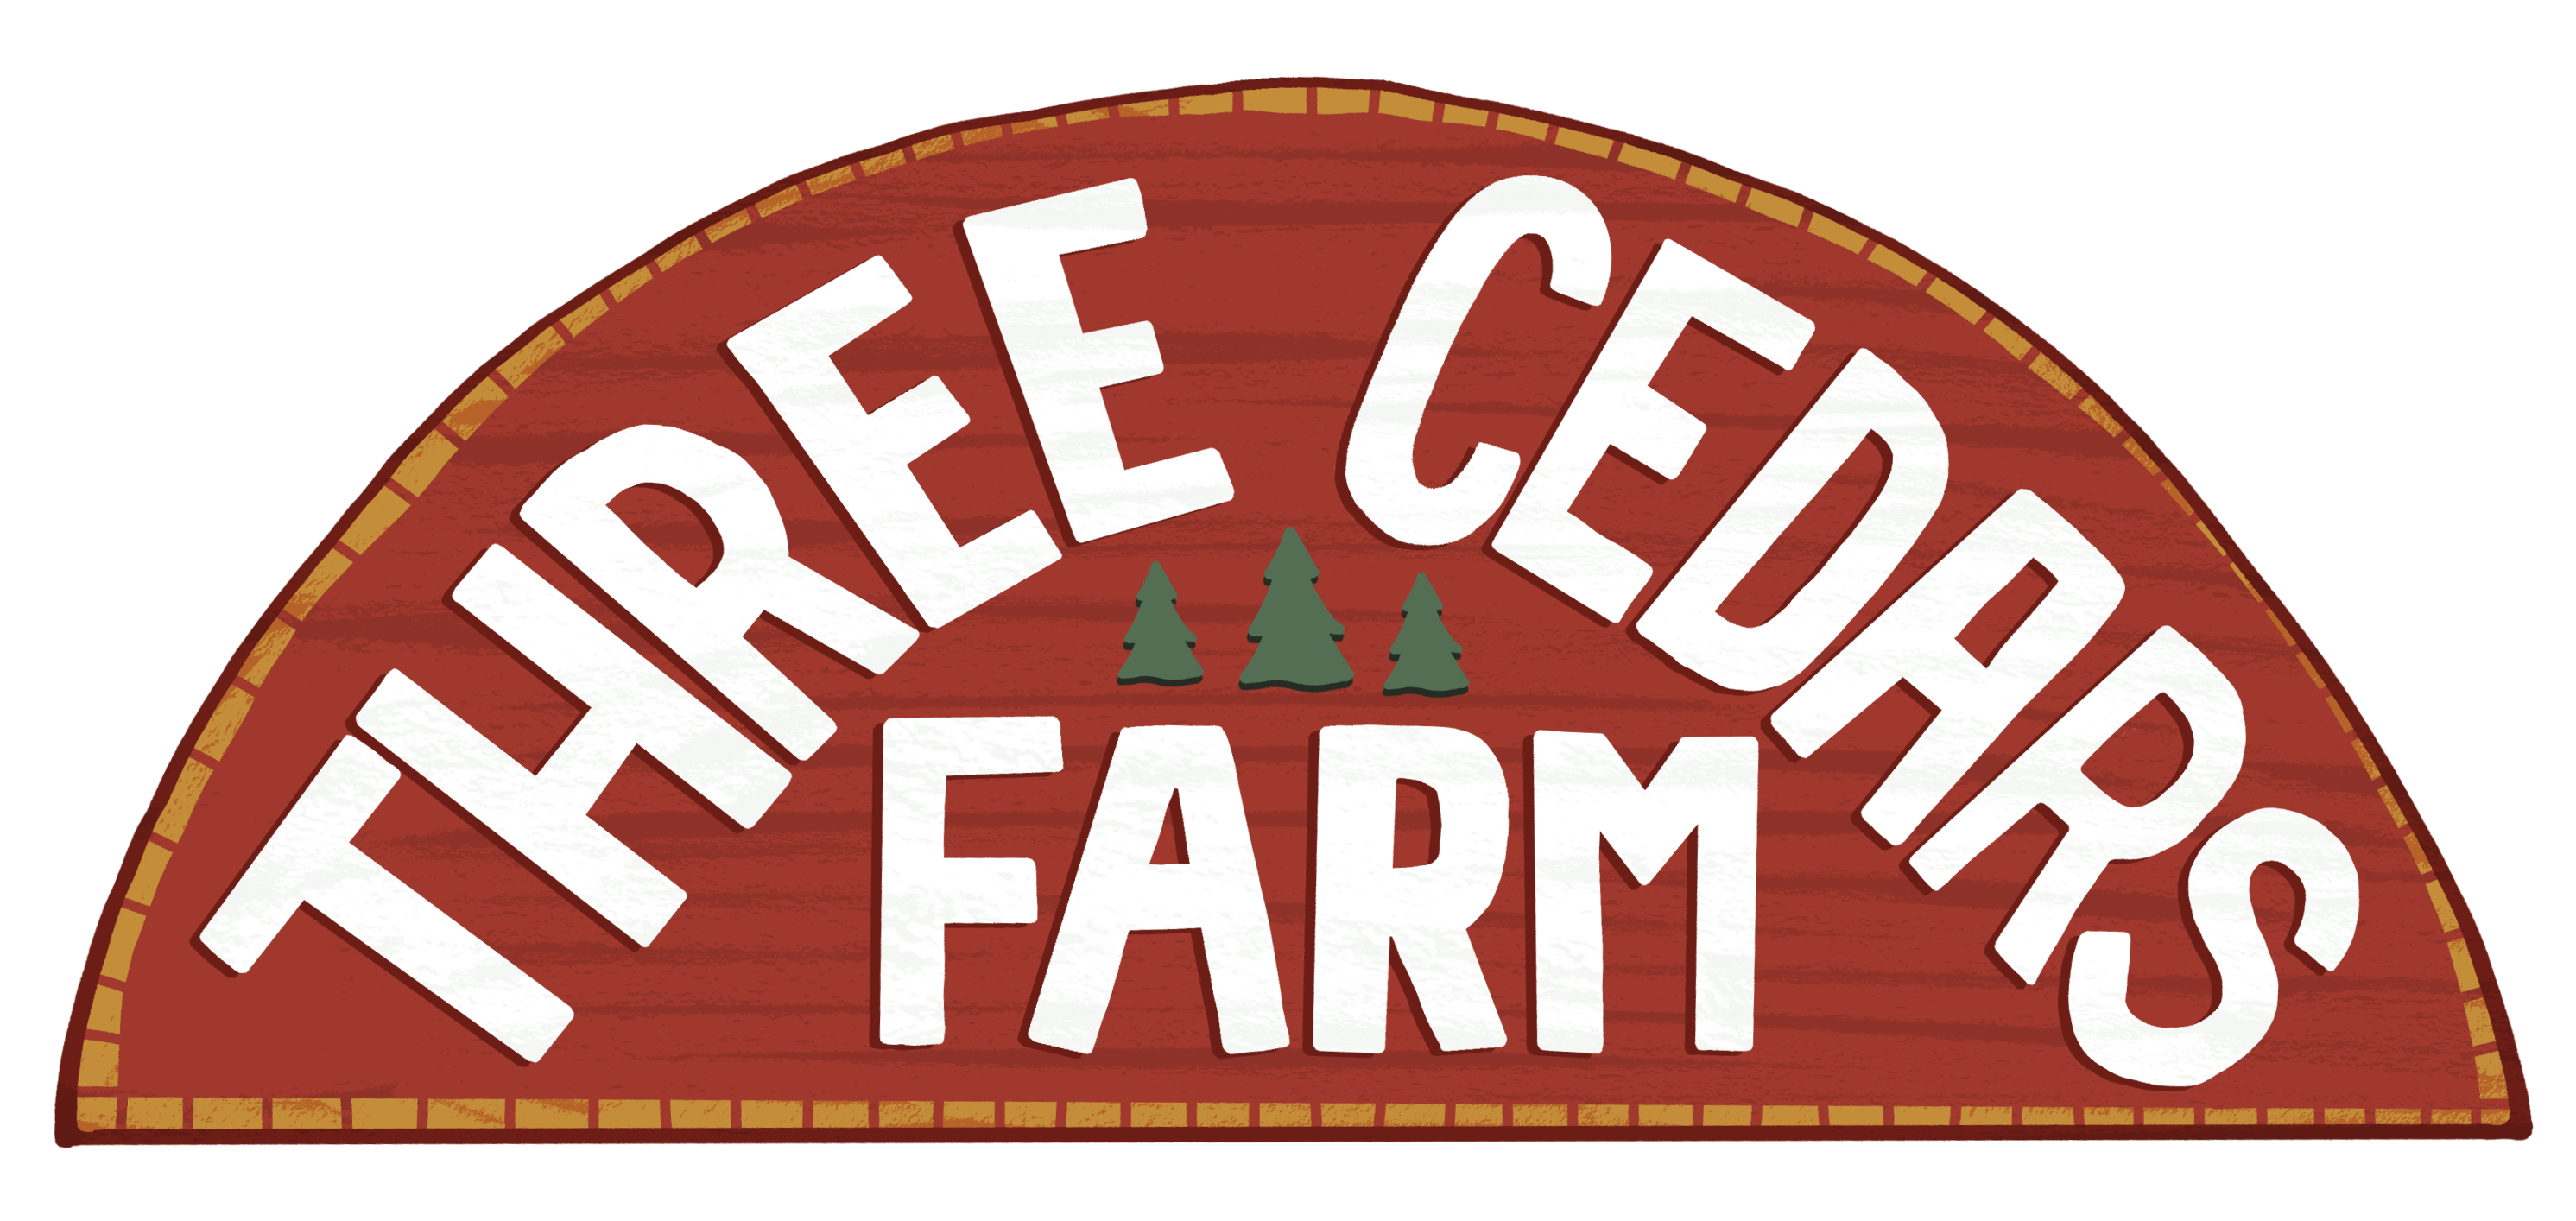 Three Cedars Farm